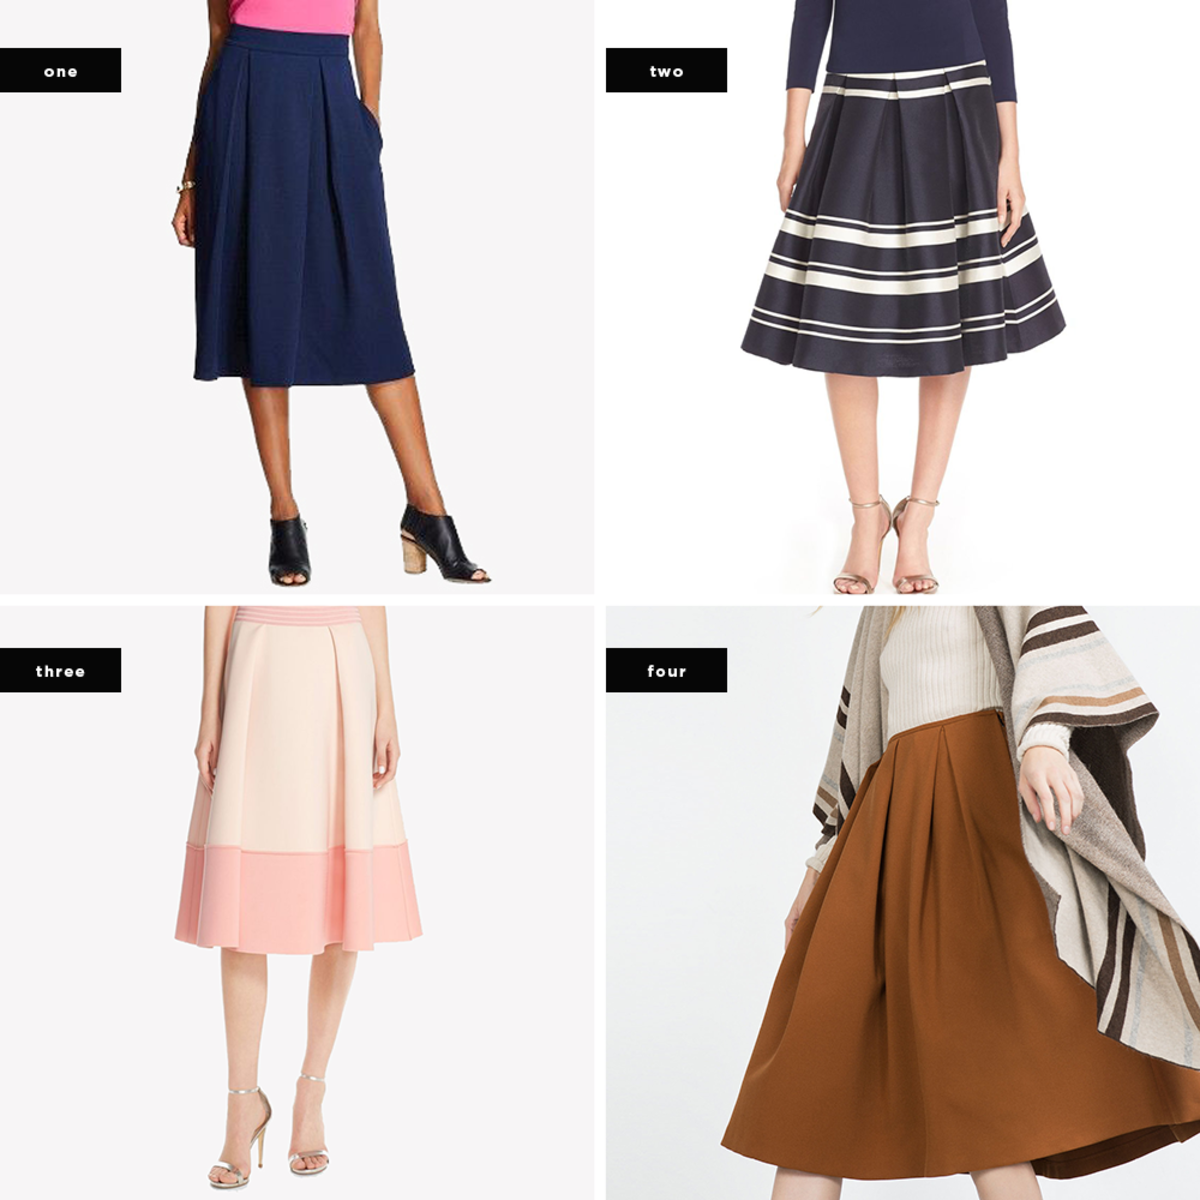 8abaacbd01 Why We Love the Universally Flattering Pleated Skirt - Verily